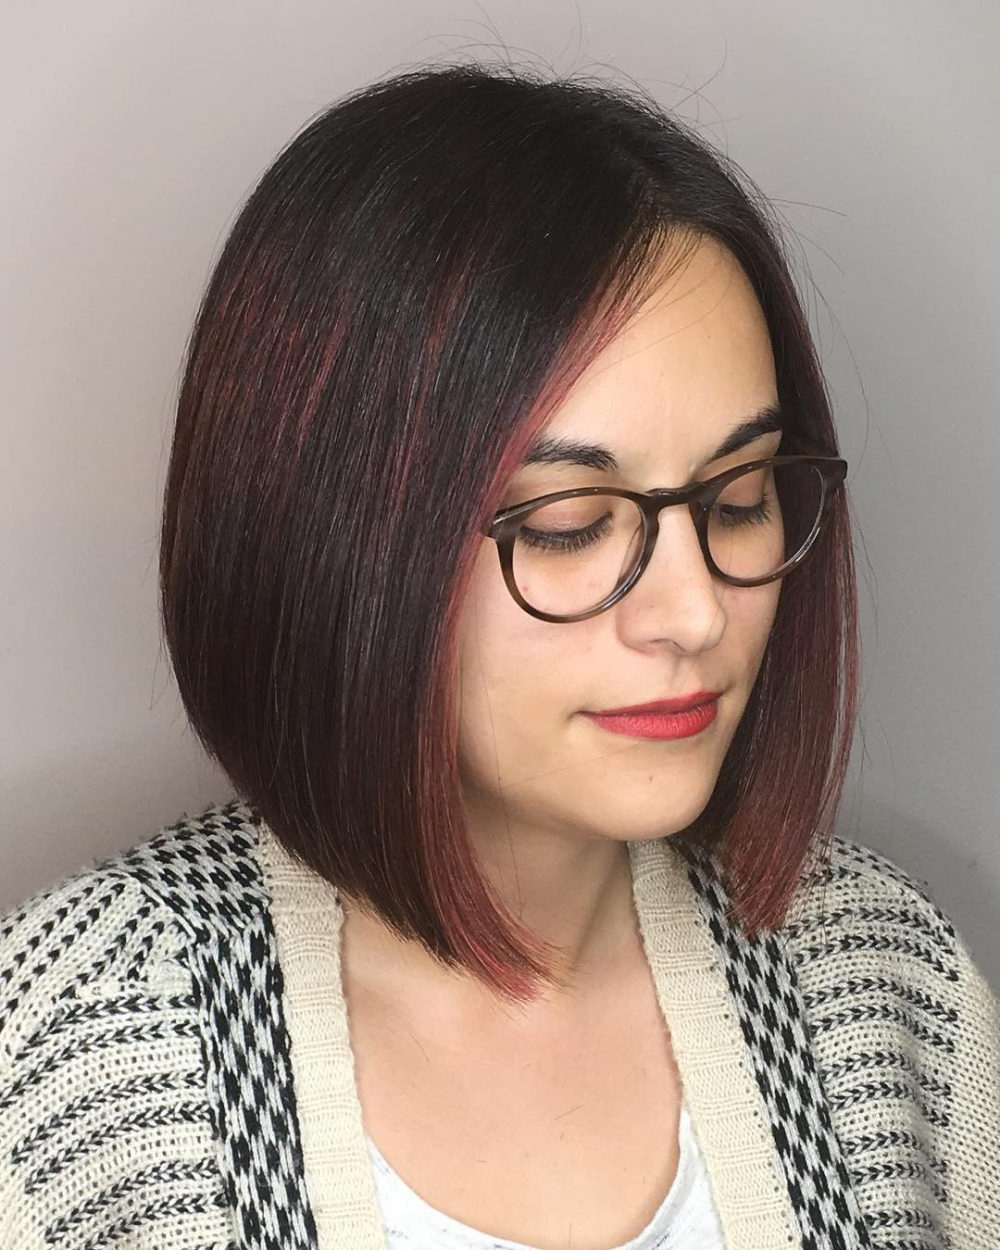 28 Most Flattering Bob Haircuts For Round Faces In 2018 Pertaining To Short Haircuts For Round Faces And Glasses (View 12 of 25)